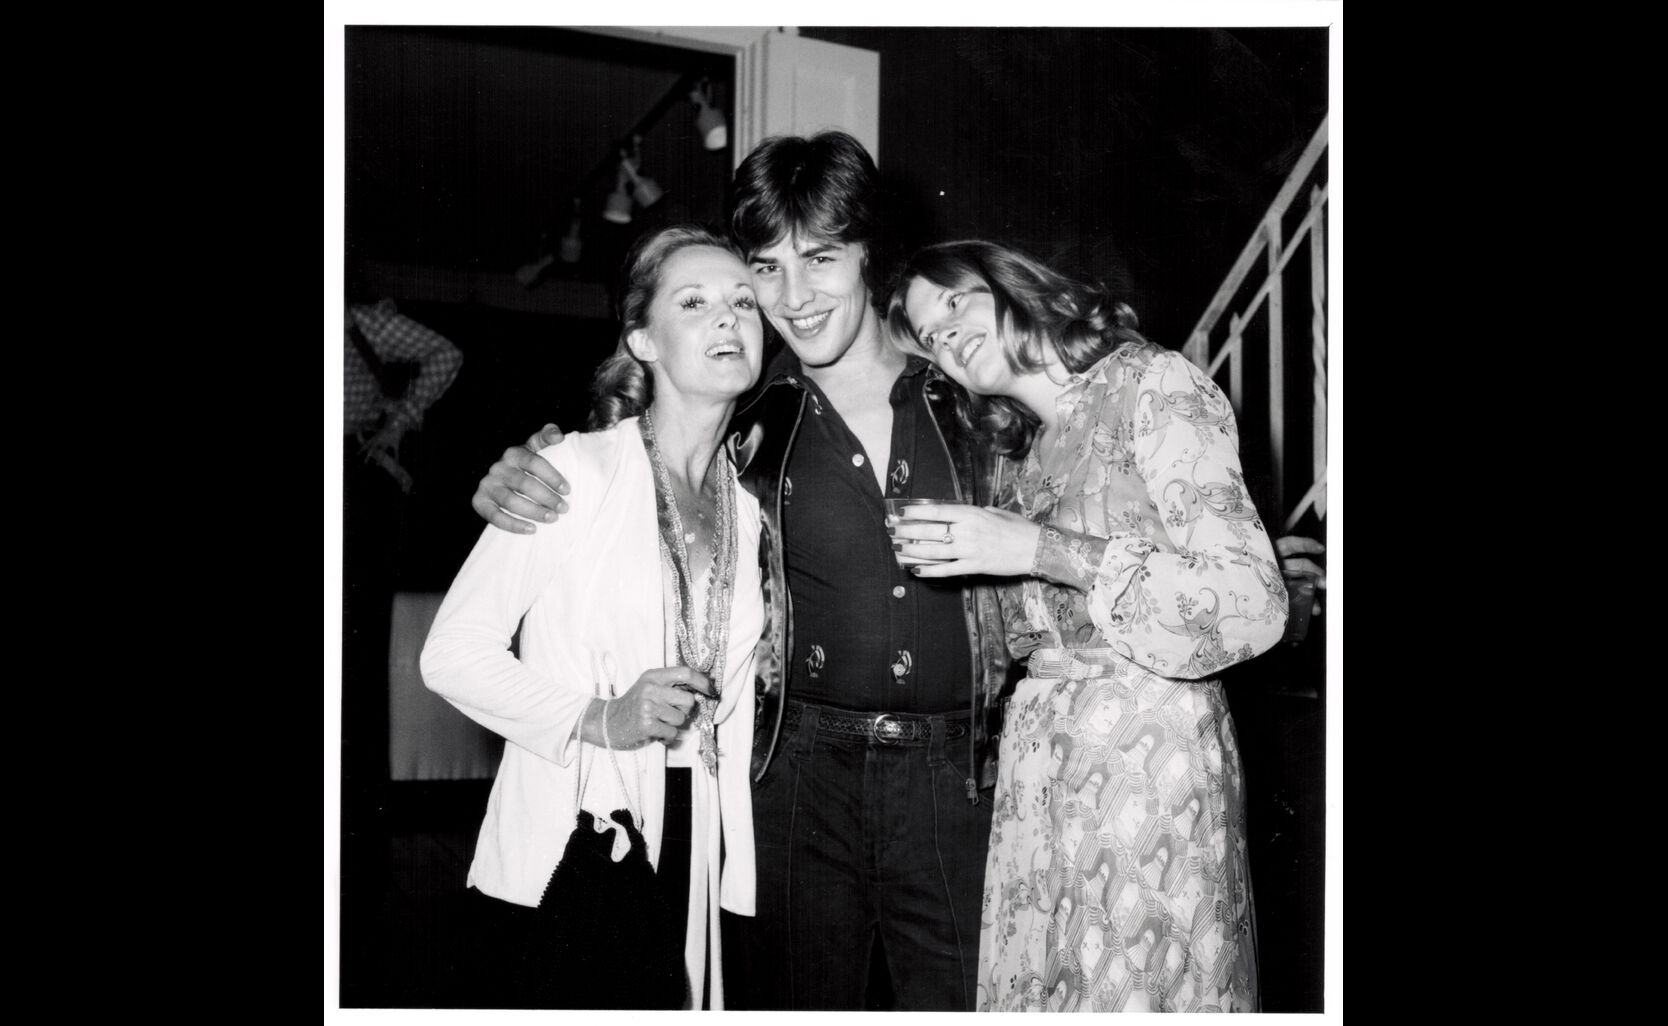 Tippi Hedren, Don Johnson and Melanie Griffith at the Golden Globes, 1973